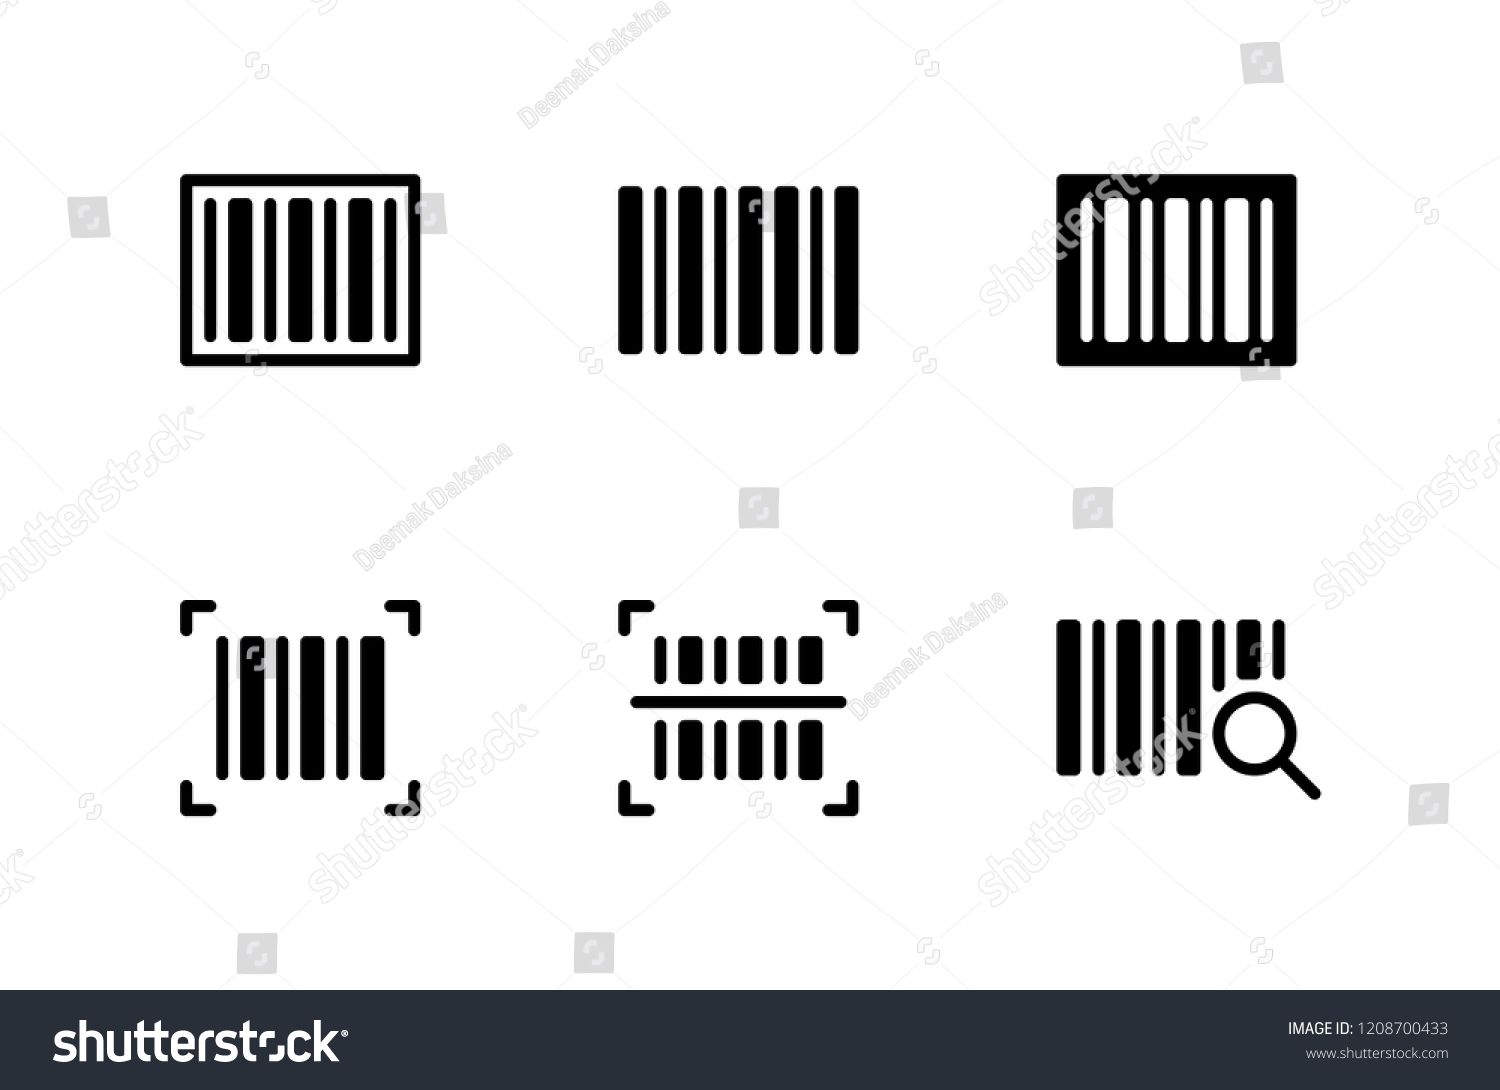 Barcode Scanner Icon Design  barcode scan, barcode, scanner, code